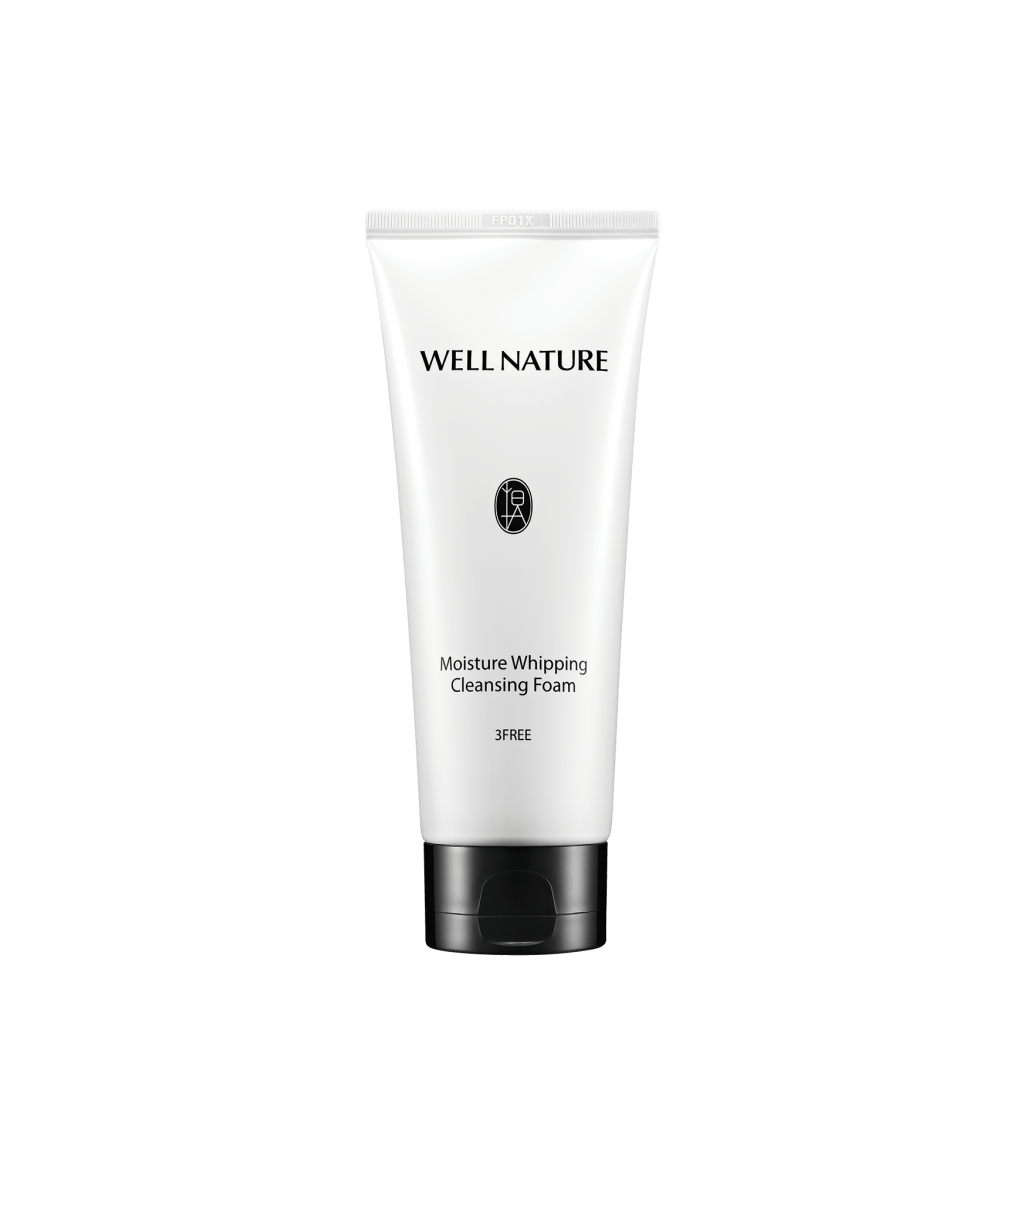 Moisture Whipping Cleansing Foam 150ml